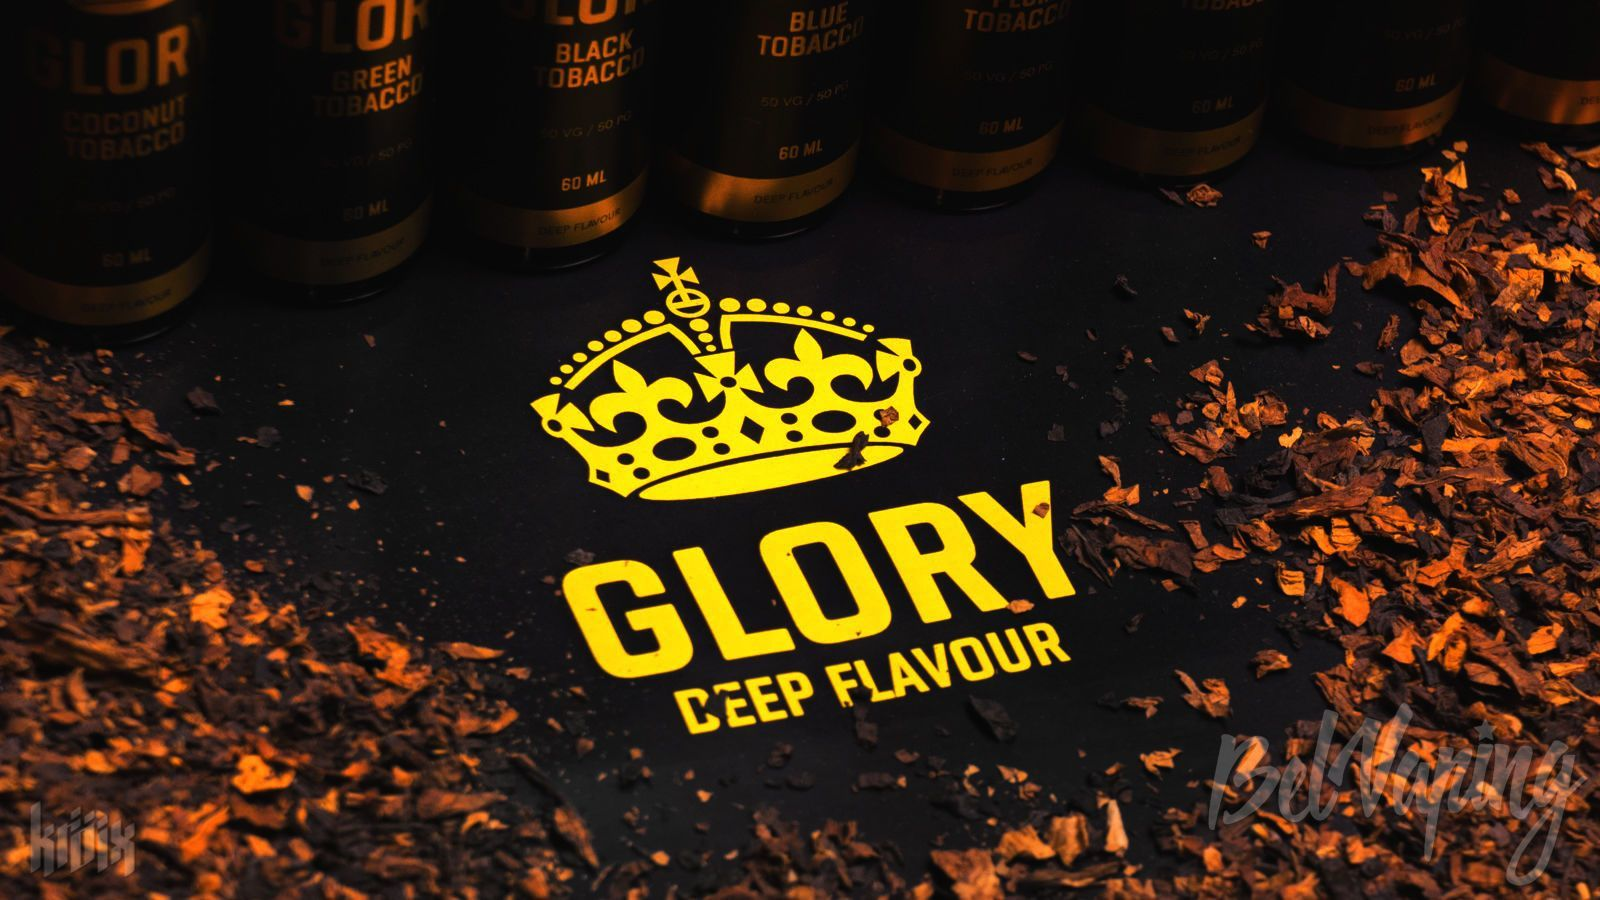 GLORY Tobacco